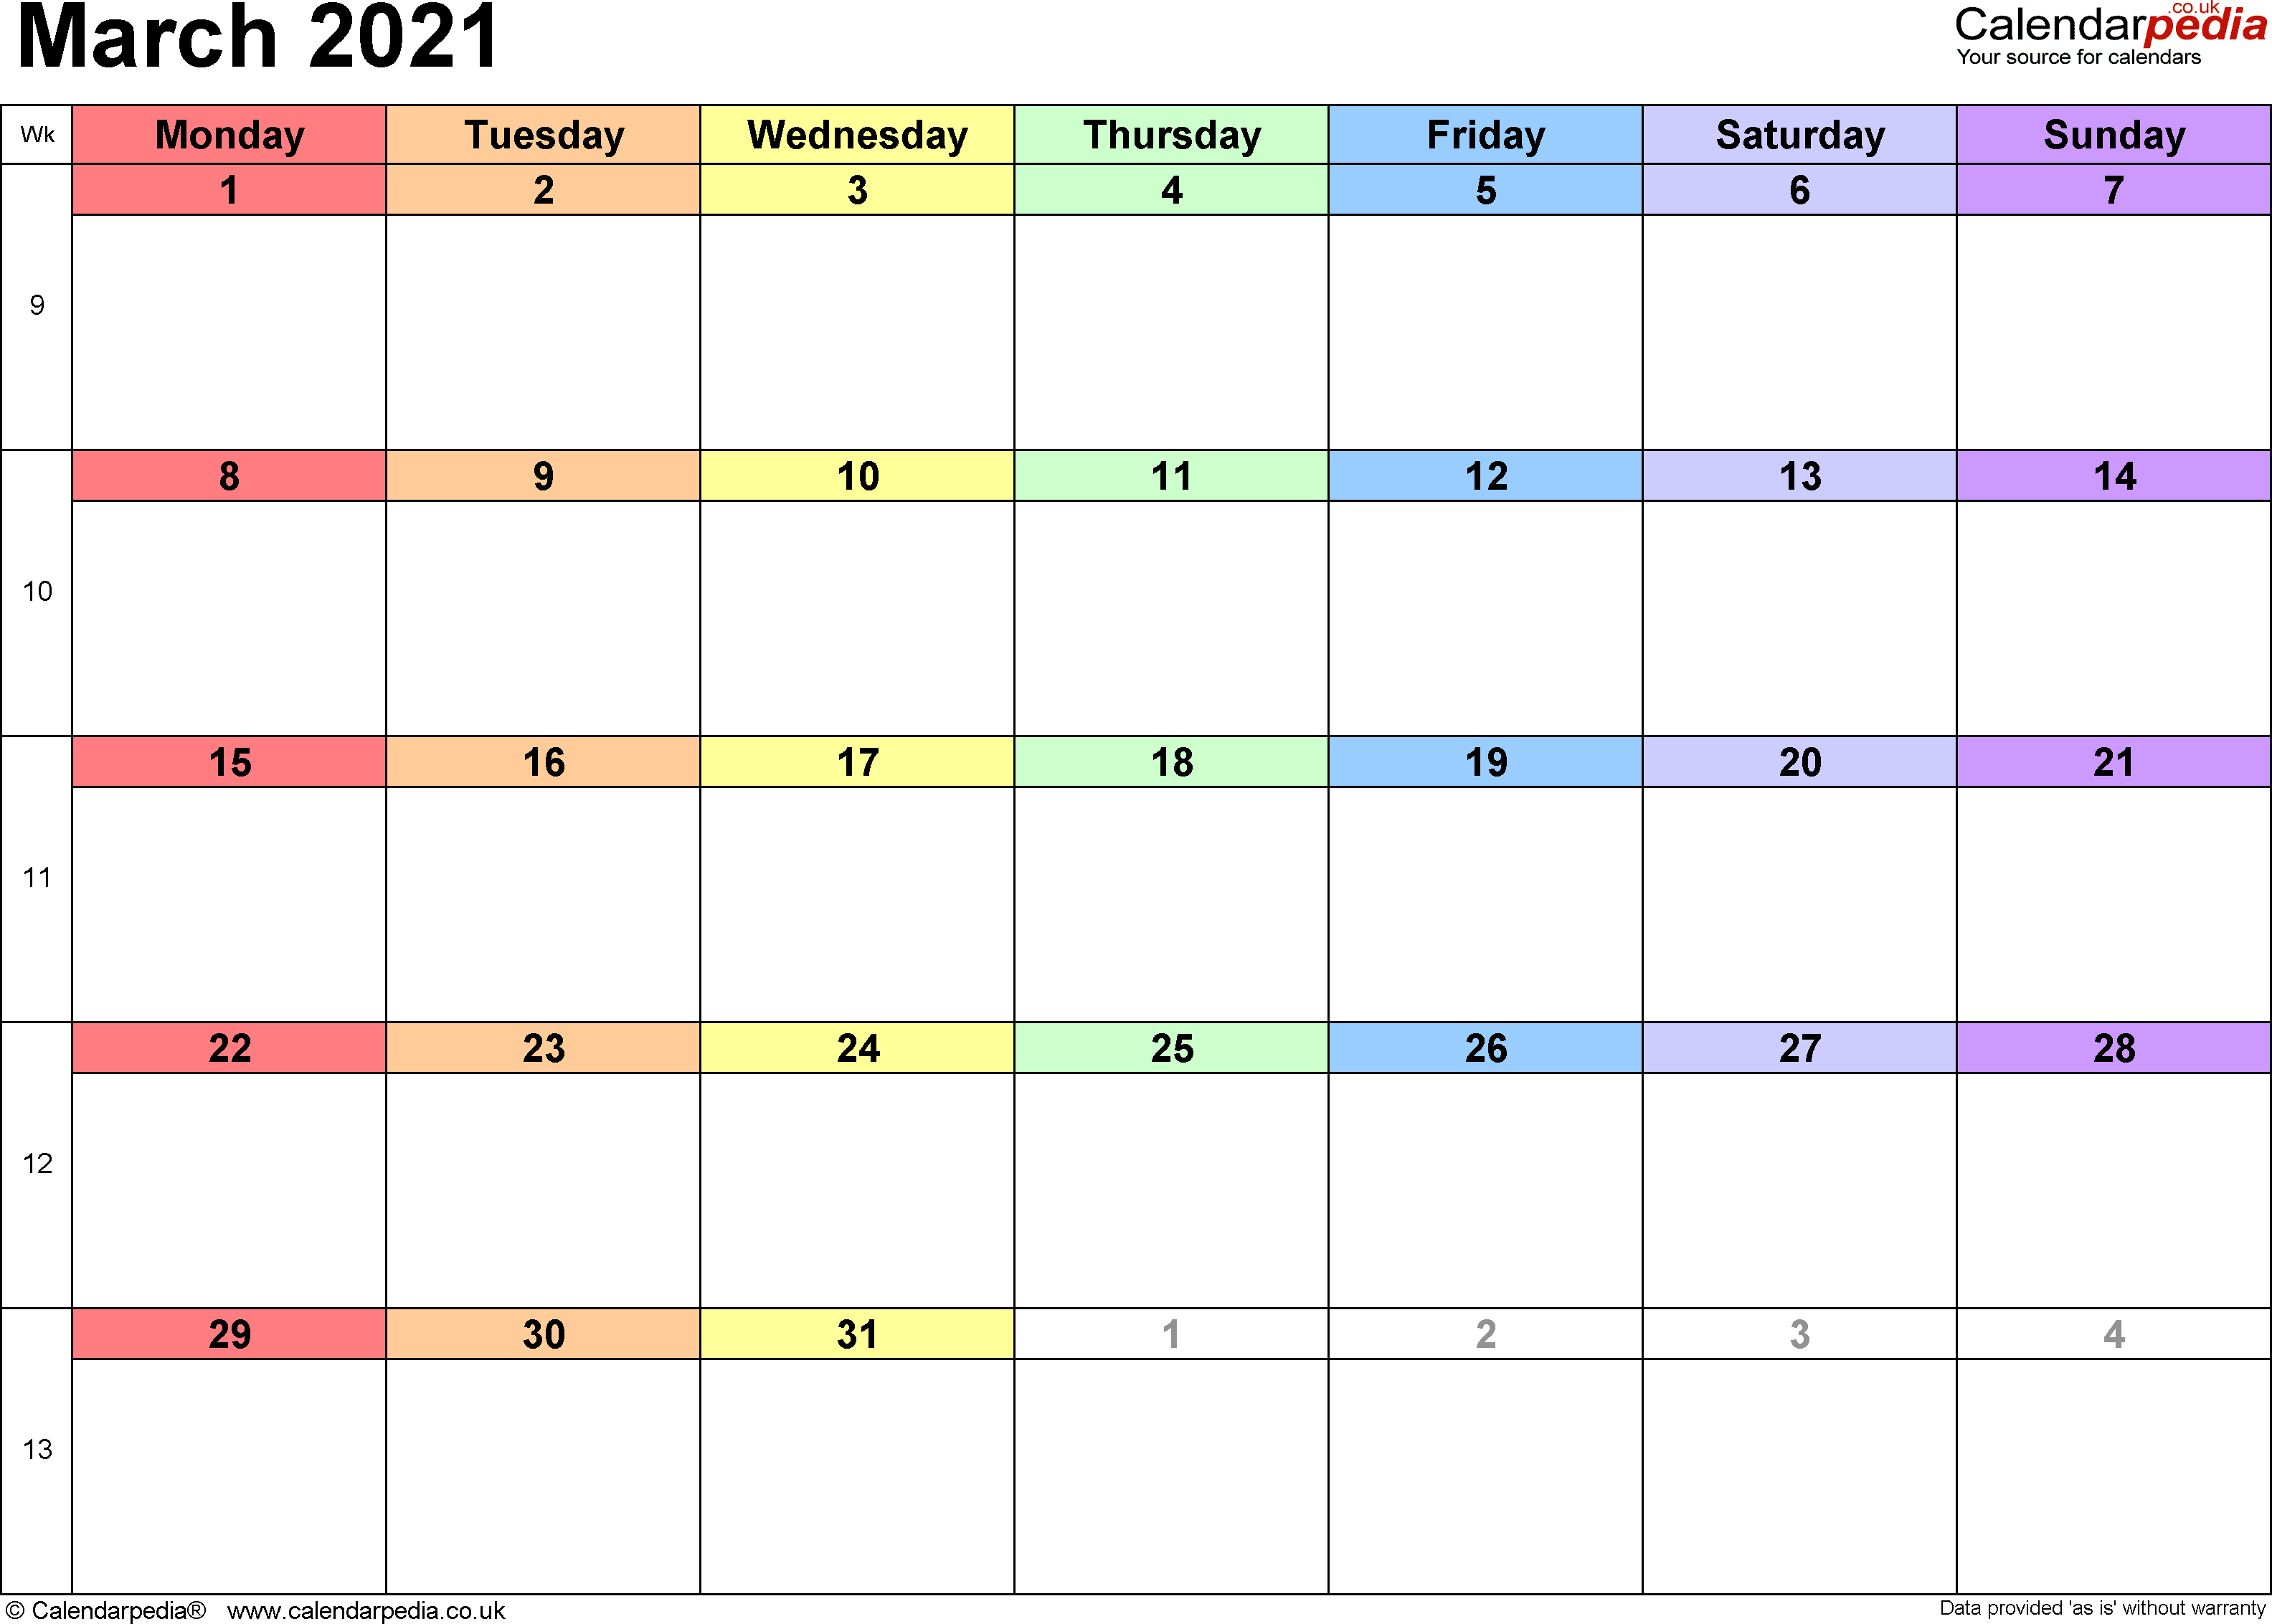 Calendar March 2021, landscape orientation, 1 page, with UK bank holidays and week numbers